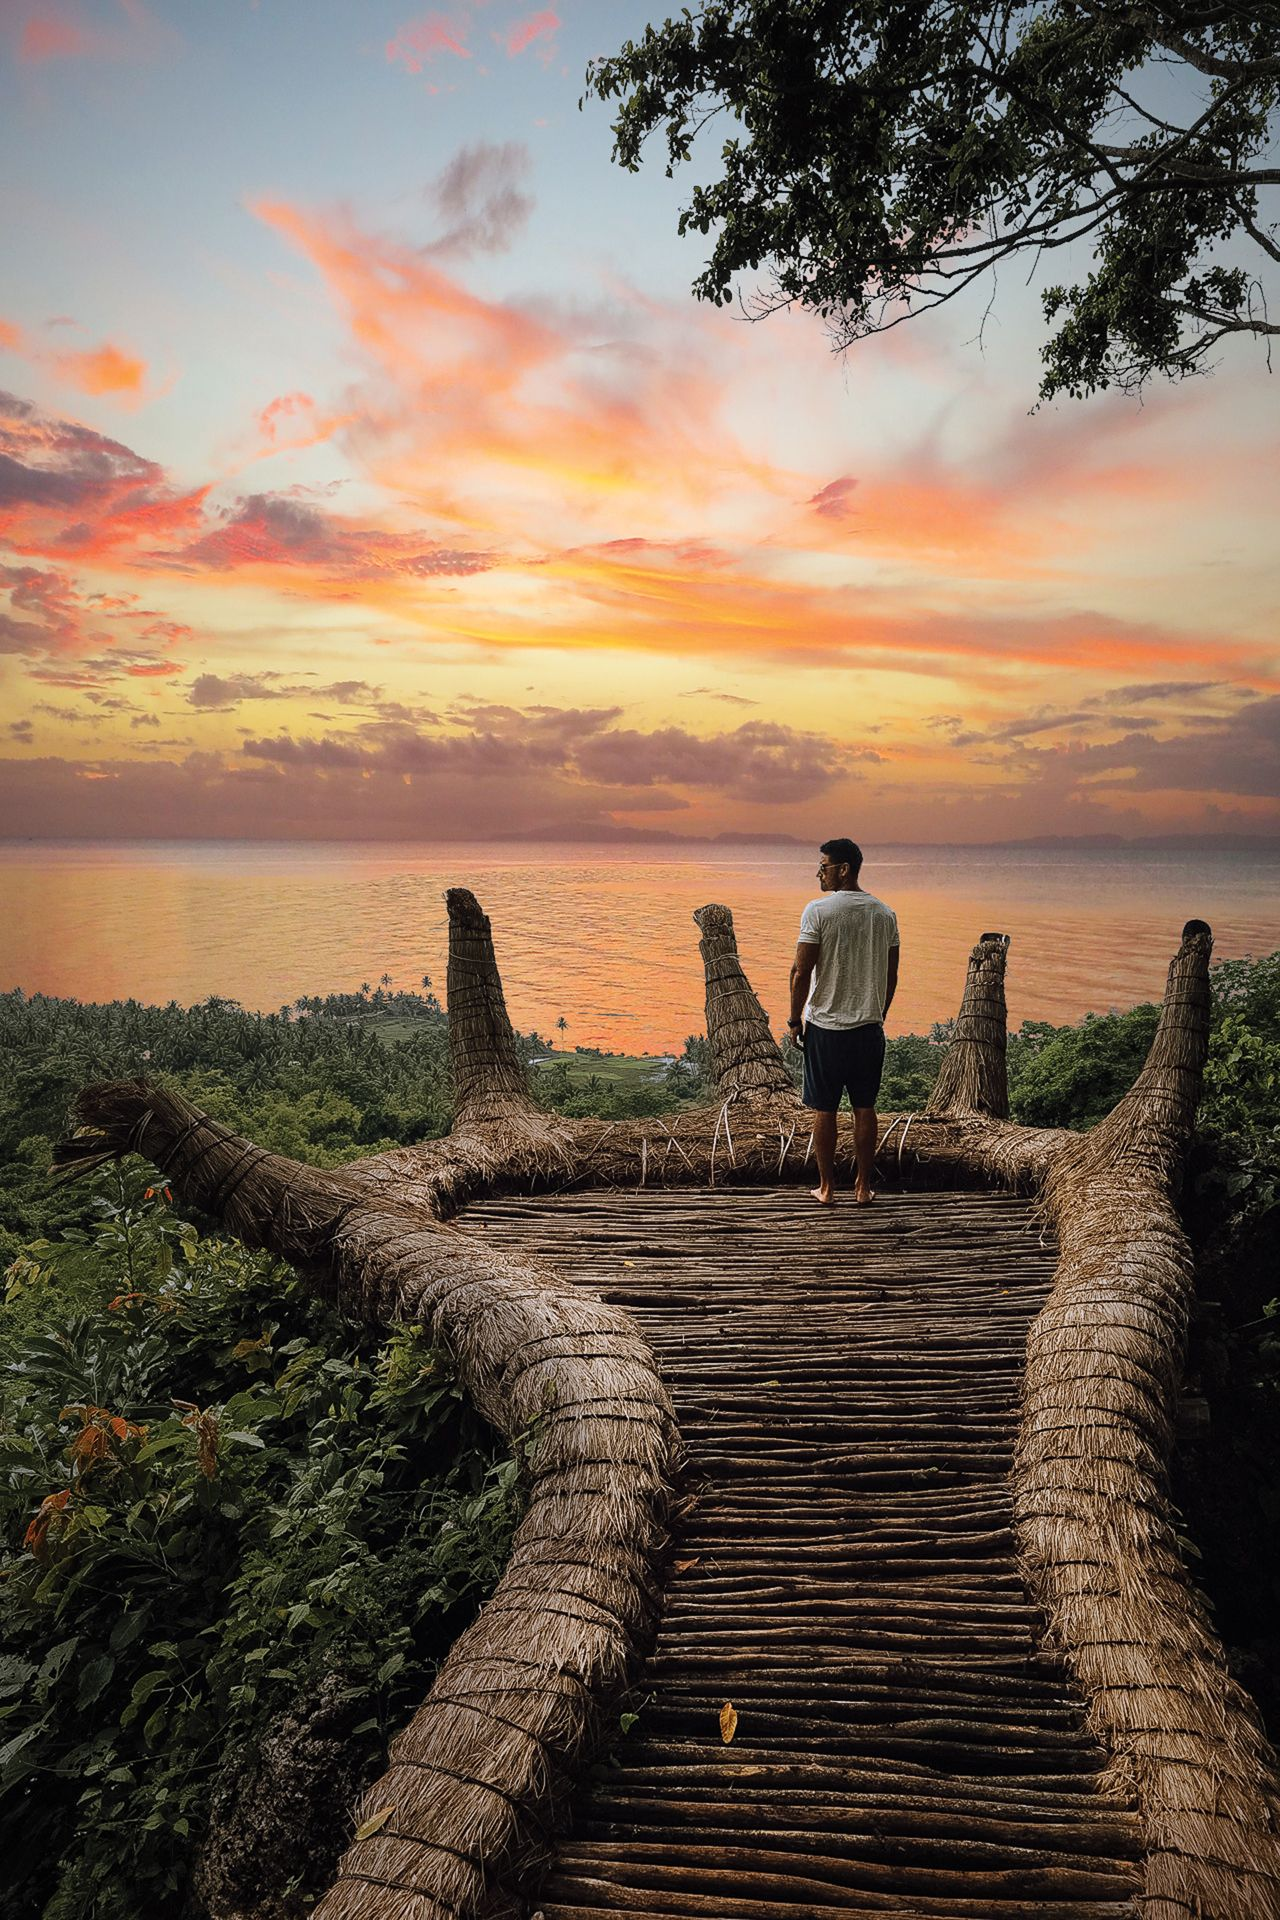 Jeremy Jauncey Of Beautiful Destinations Shares His Top Travel Spots